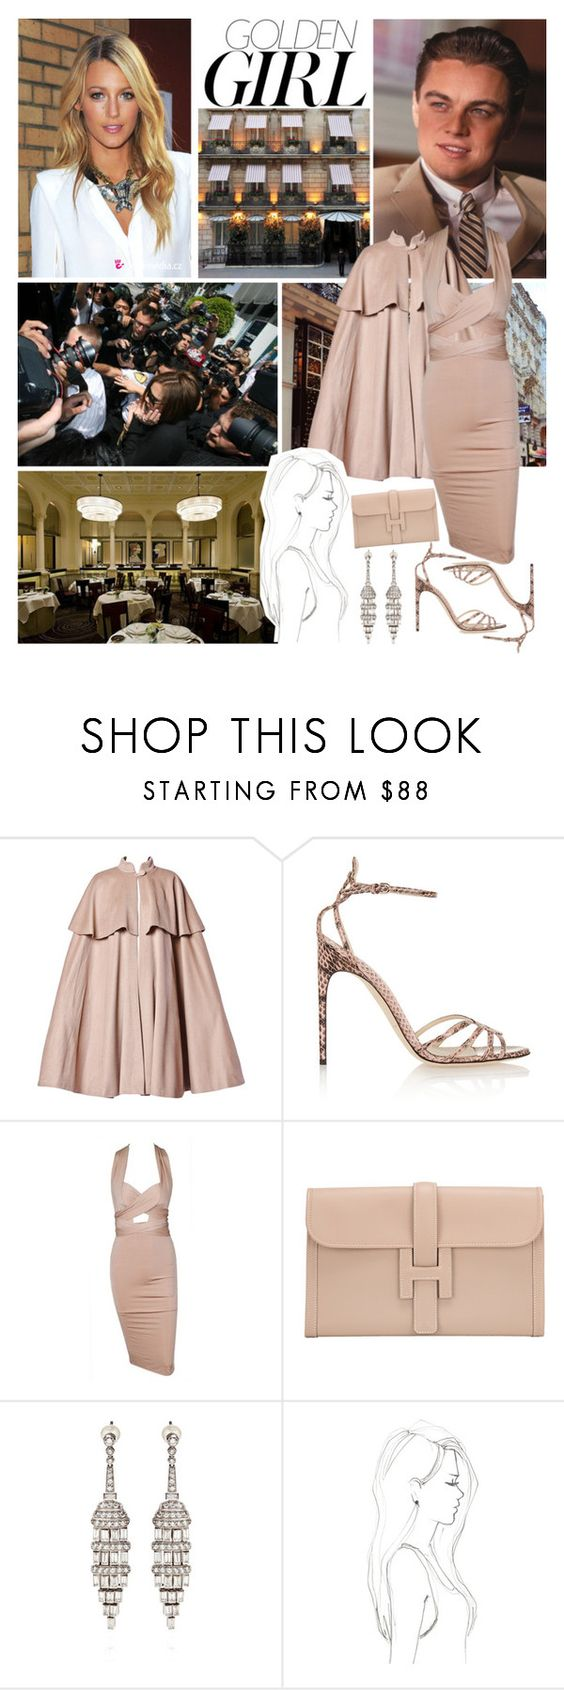 """""""Paparazzi Spotting Eleanor and Leo Having a Date Night At A London Restaurant"""" by eleanorofwales ❤ liked on Polyvore featuring Murphy, Moschino, Brian Atwood, Hermès and Monique Péan"""